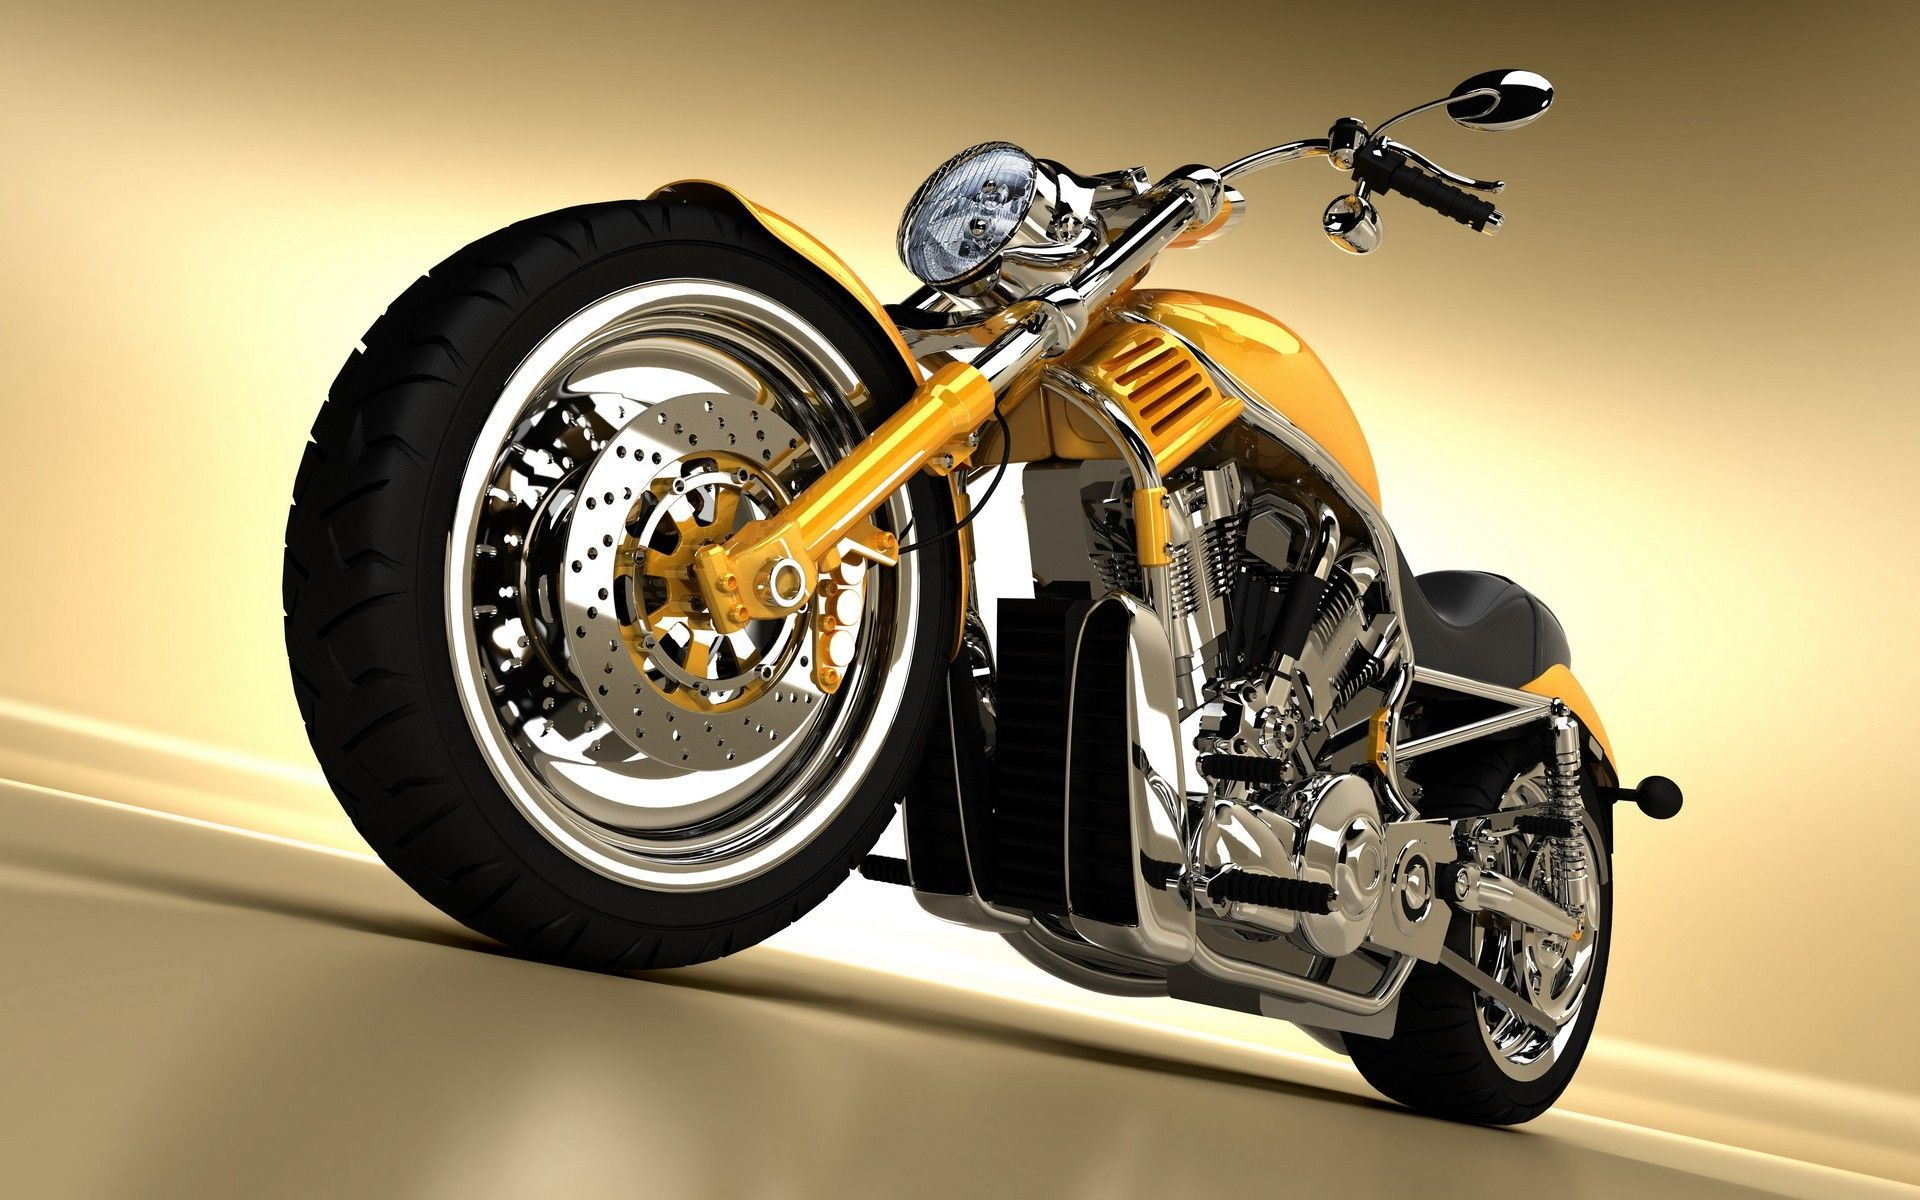 Download Free Harleydavidson Wallpapers For Your Mobile Phone